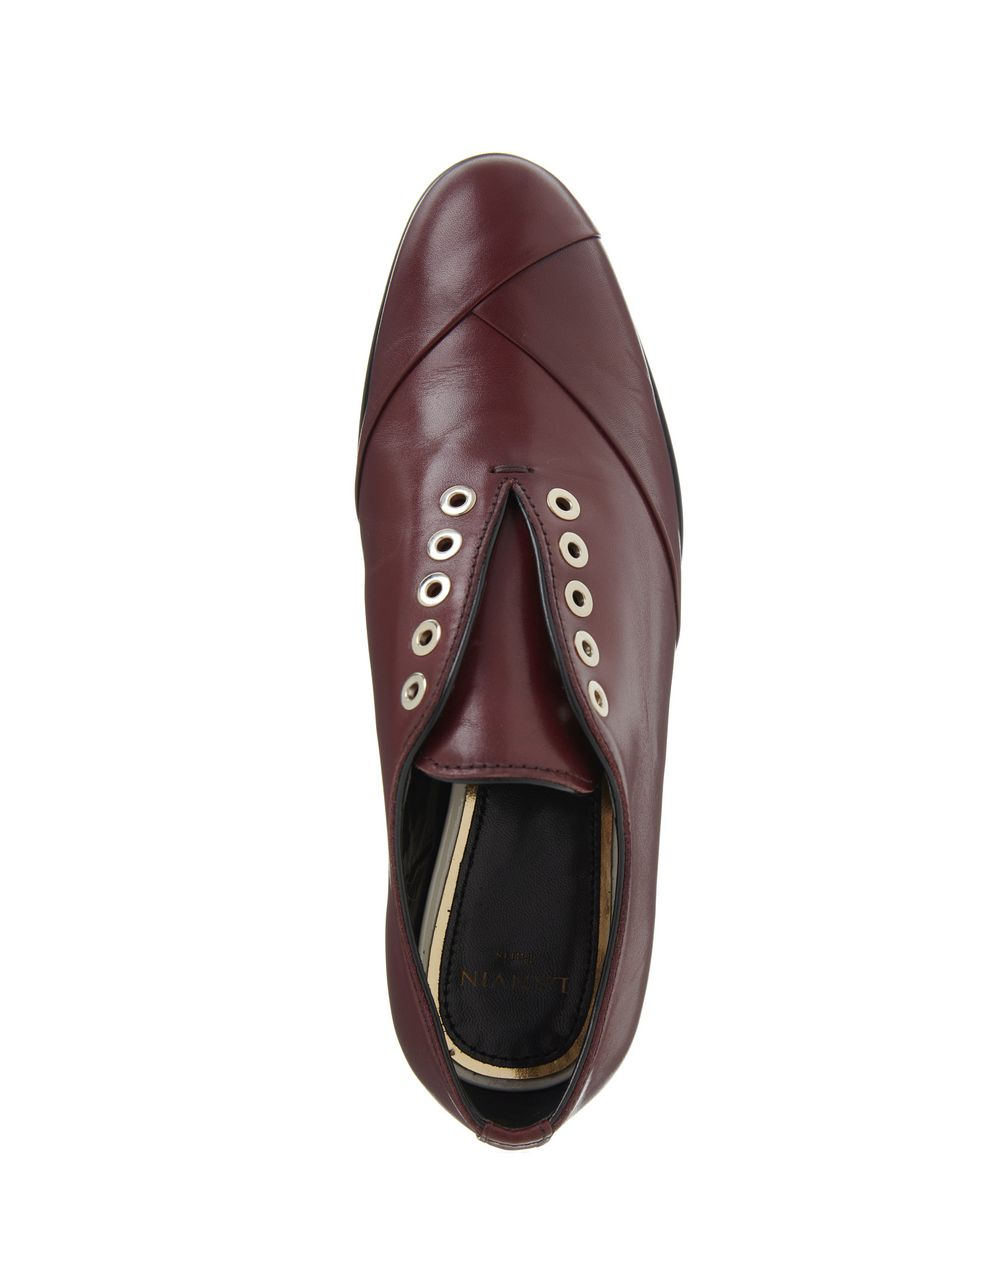 CROSSOVER DERBY LOAFER - Lanvin